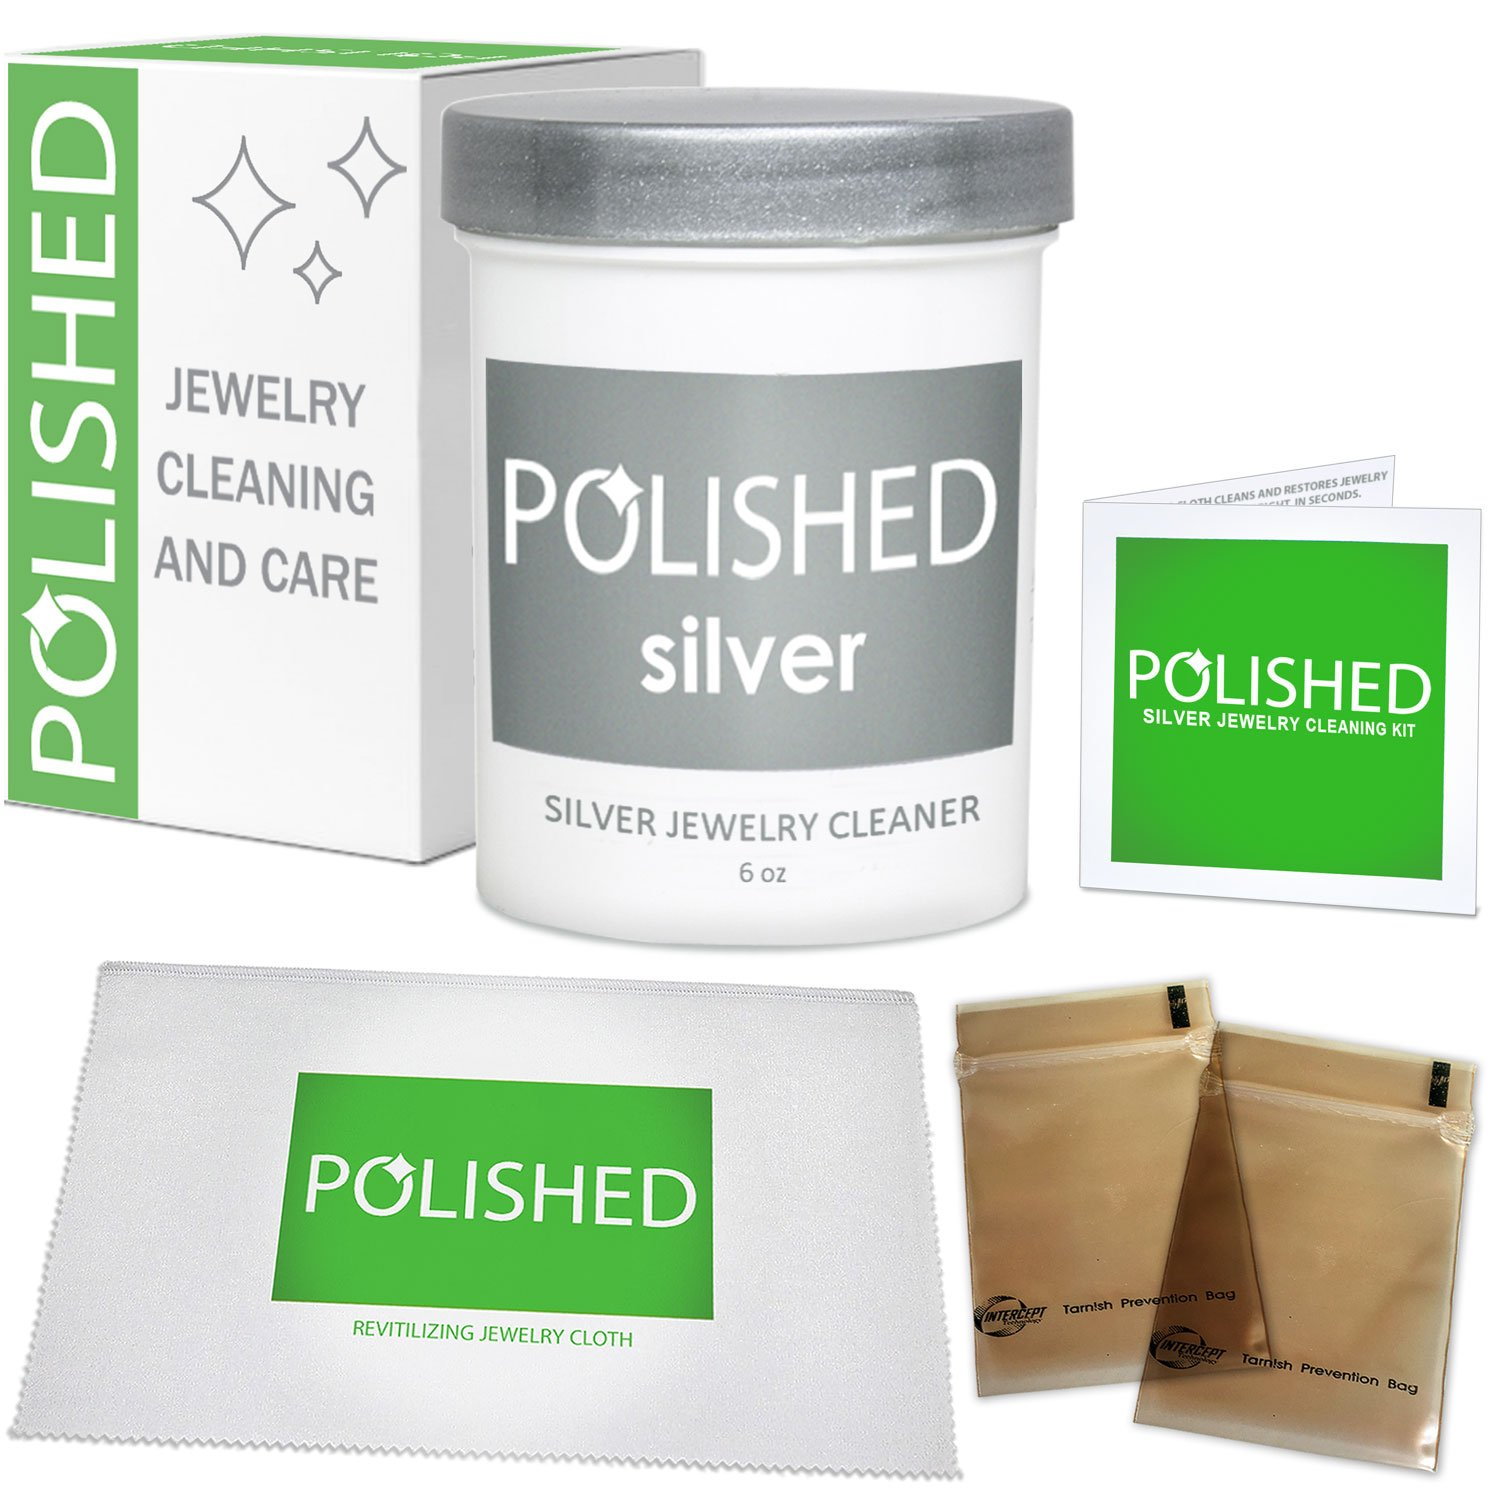 Polished Silver Jewelry Cleaner Kit - Professional Jewelry Cleaning in 1-Minute | Silver Cleaning Solution, Polishing Cloth + Anti-Tarnish Jewelry Bags | Made in USA + Best Sterling Silver Cleaner